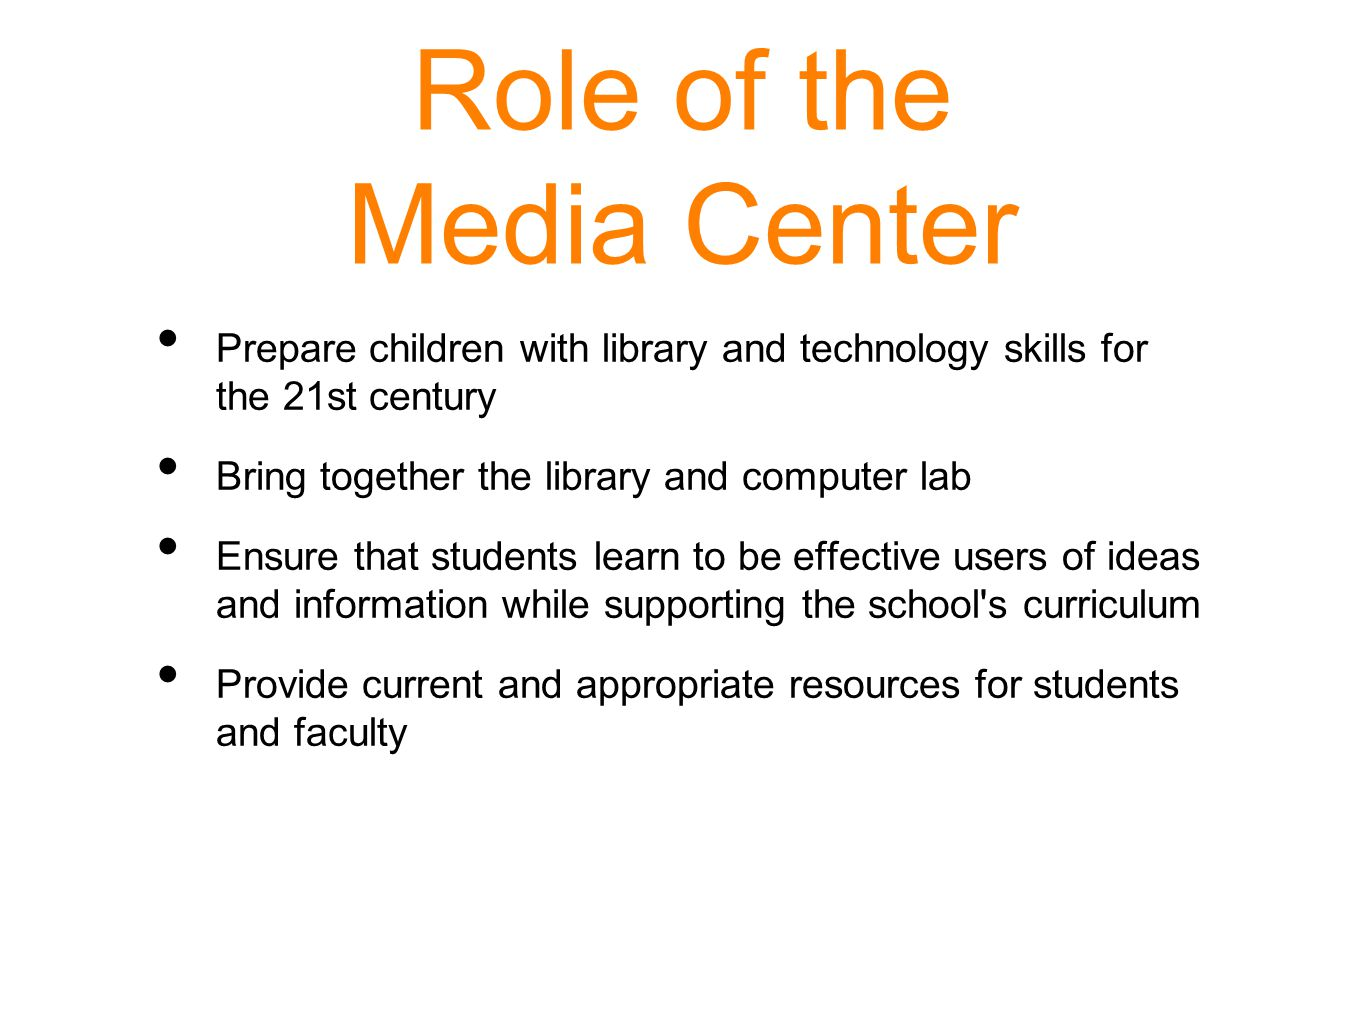 Role of the Media Center